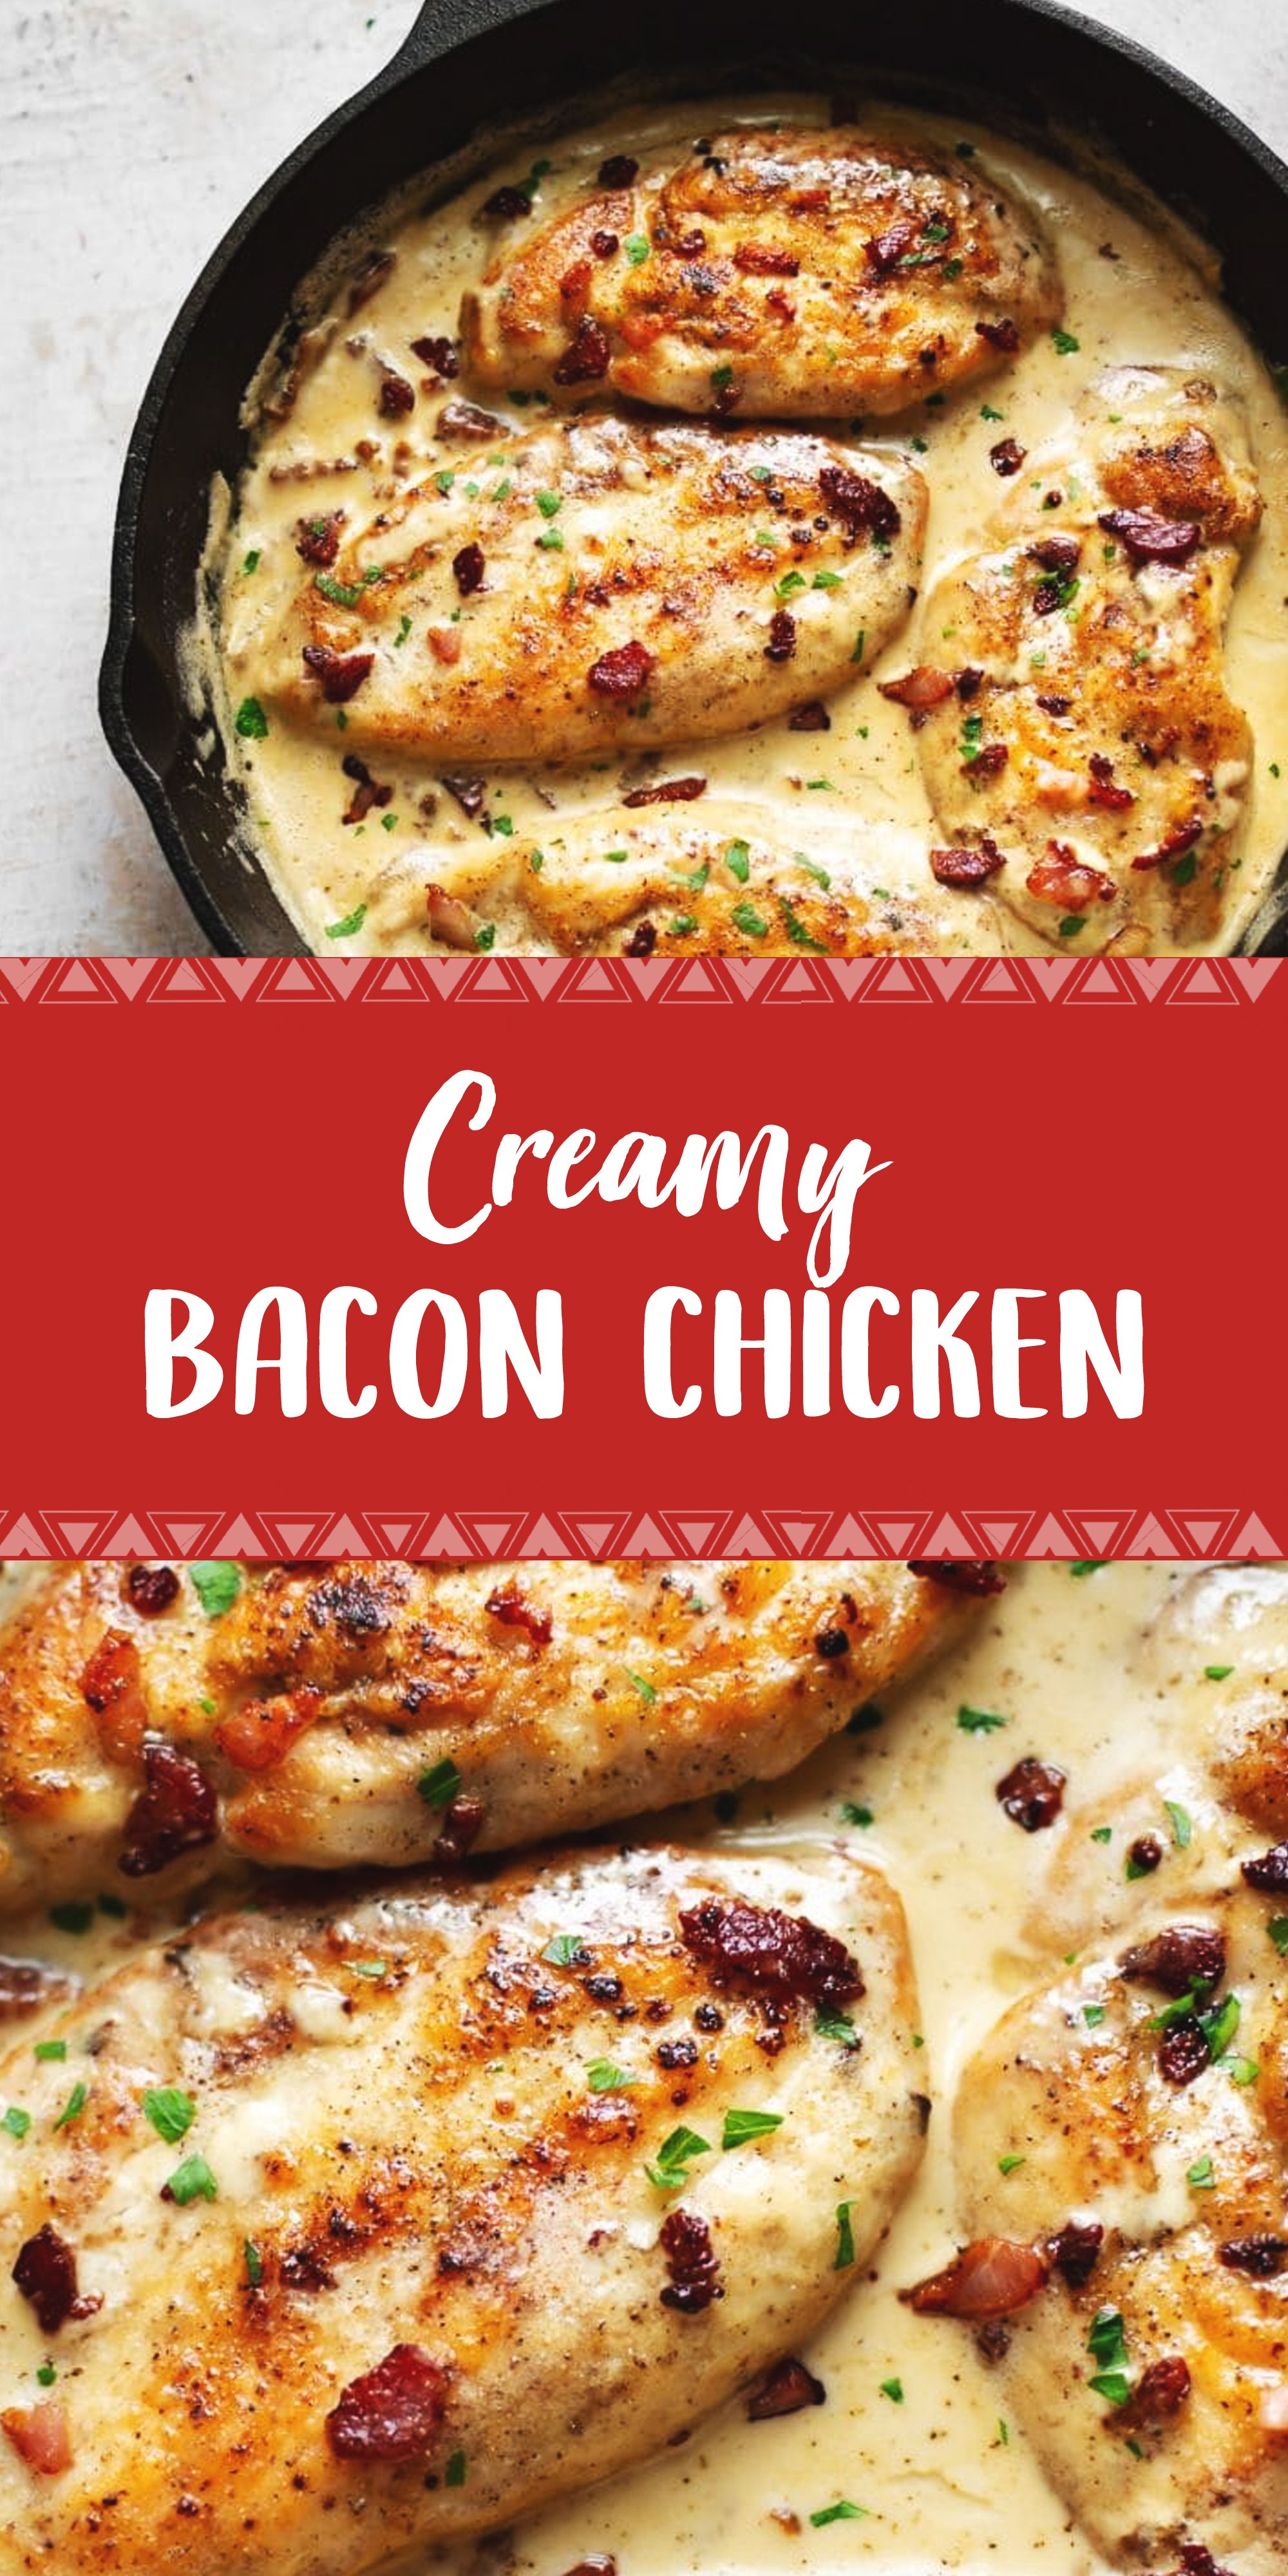 Creamy Bacon Chicken Chicken Bacon Recipes Chicken Bacon Chicken Recipes